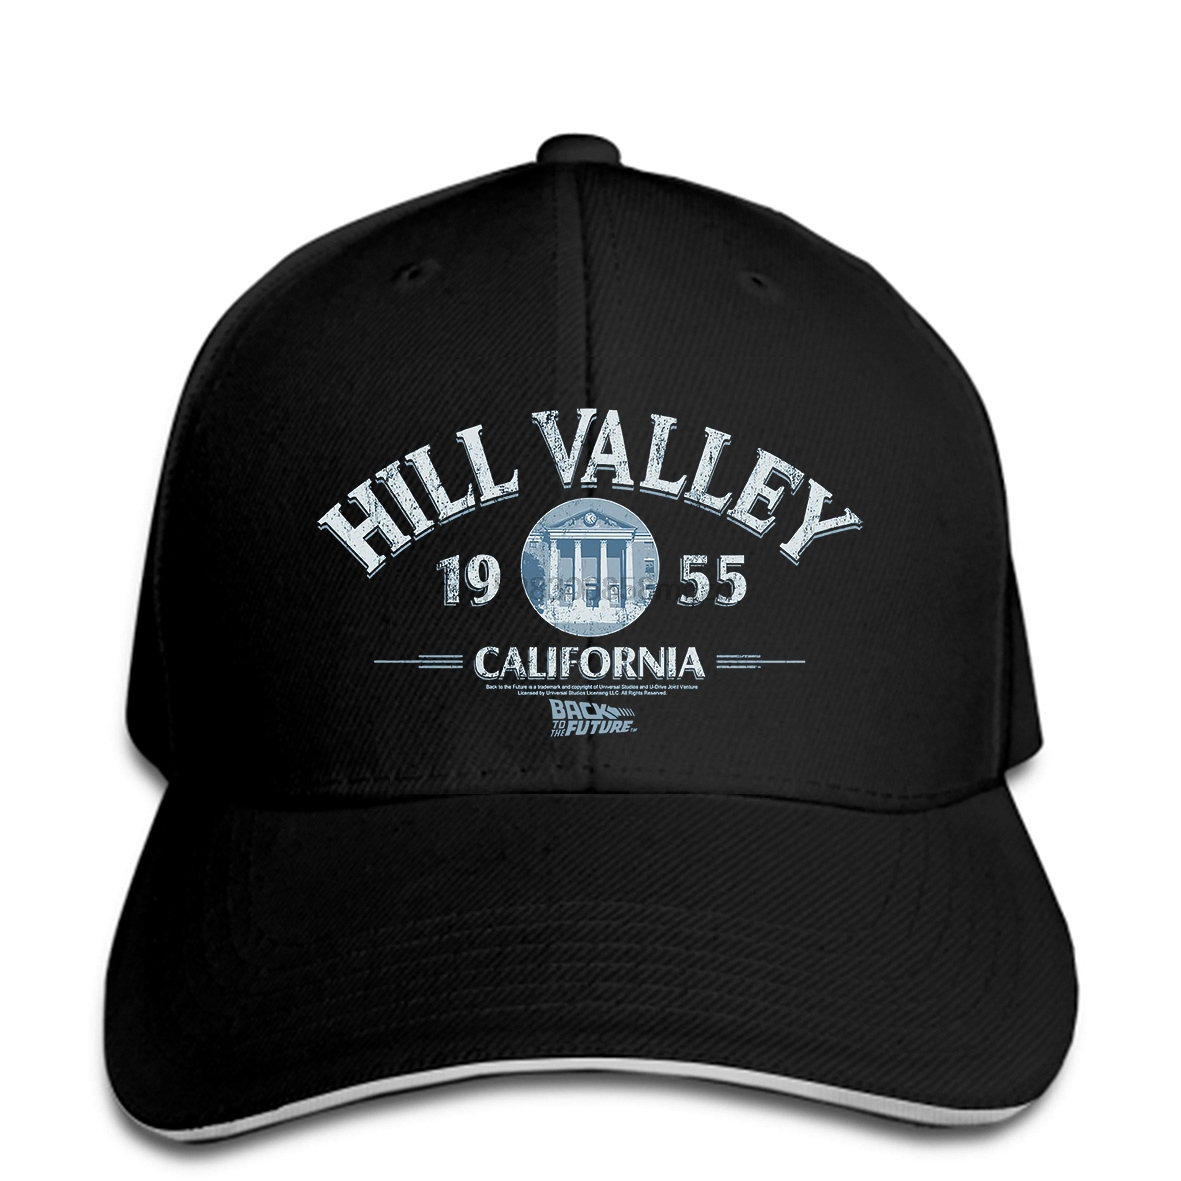 Back to the Future Movie HILL VALLEY California 1955 Licensed Men Baseball Cap Snapback Cap Women Hat Peaked image